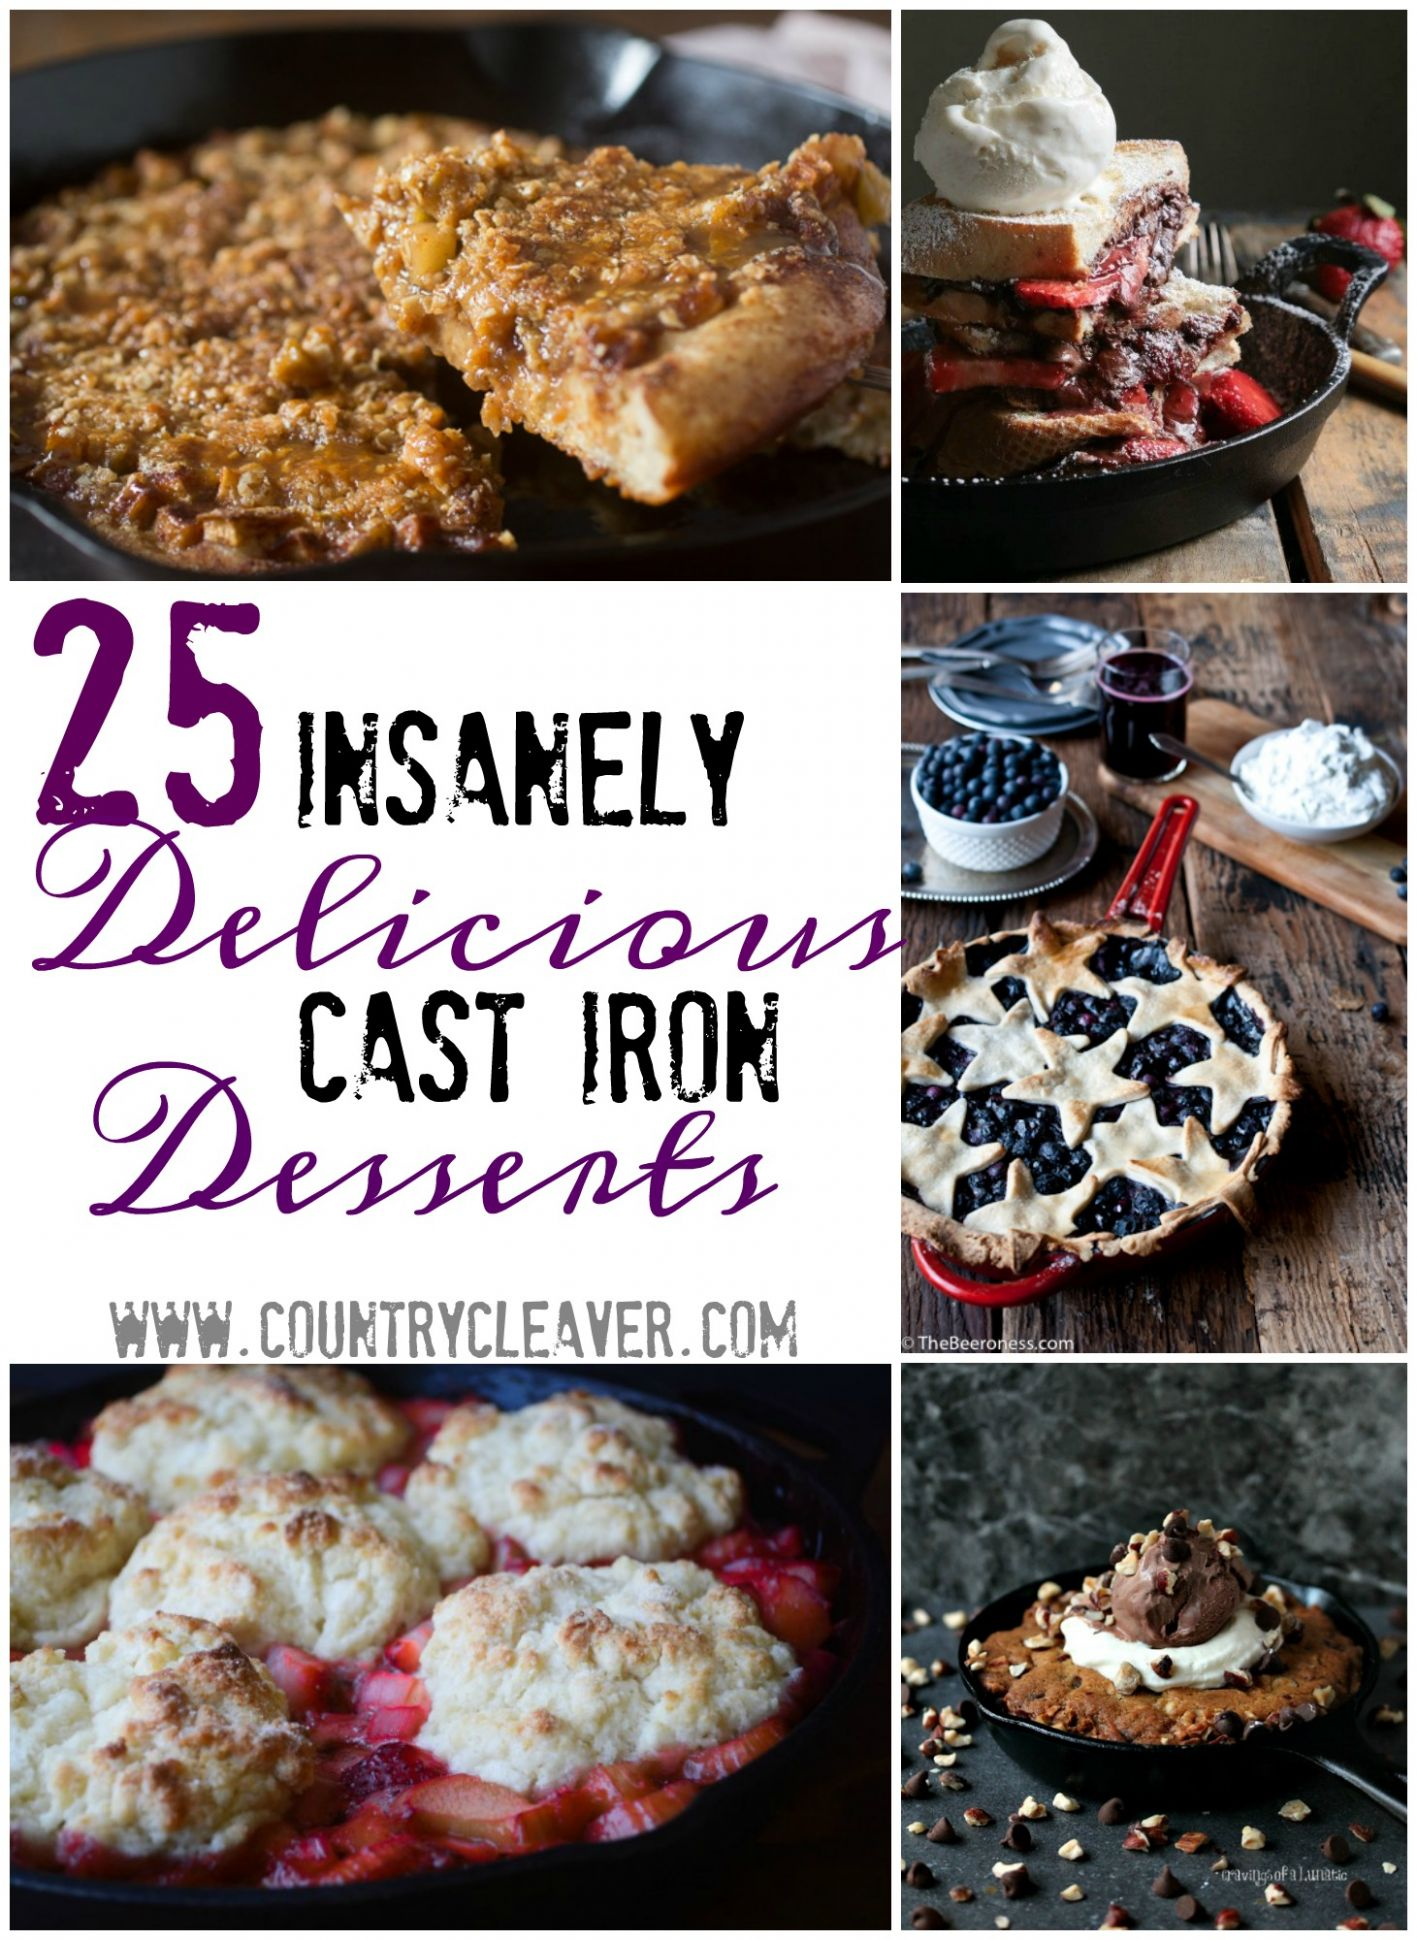 12 Insanely Delicious Cast Iron Desserts - Country Cleaver - Dessert Recipes Delicious